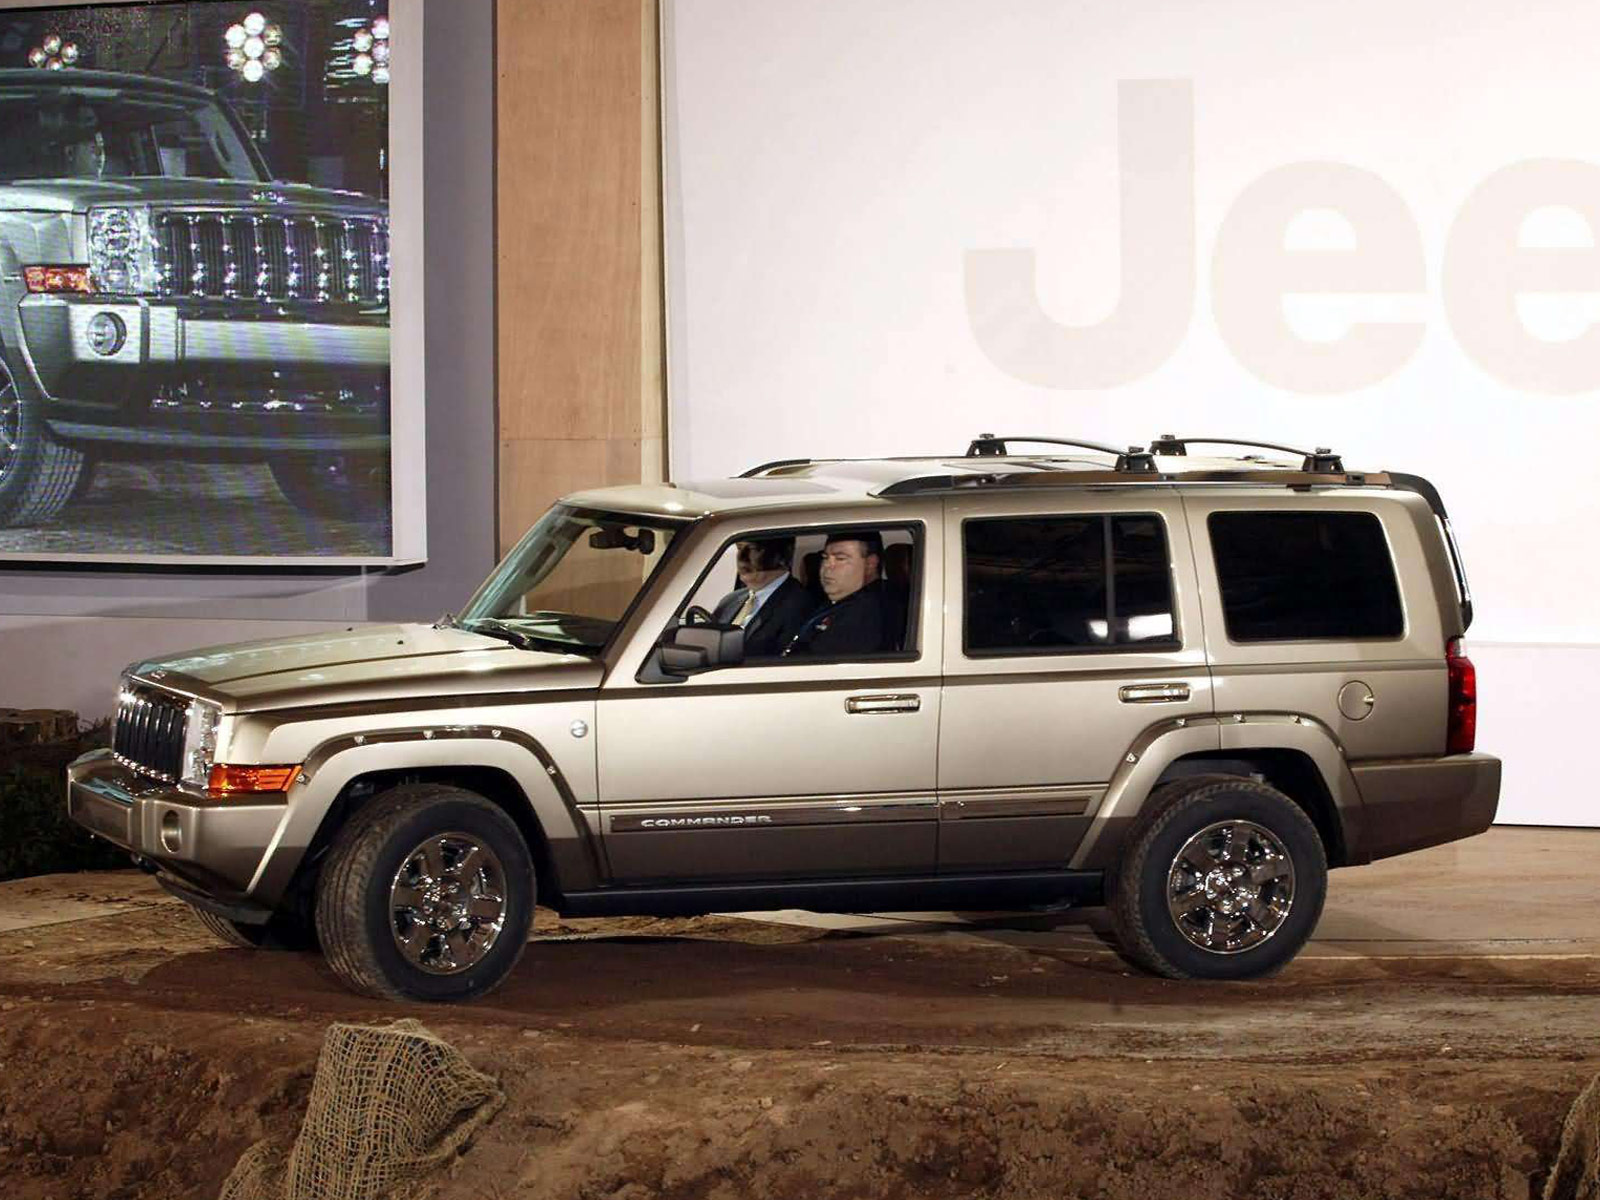 9 Passenger Suv >> 2006 JEEP Commander 4x4 Limited 5.7 HEMI wallpaper